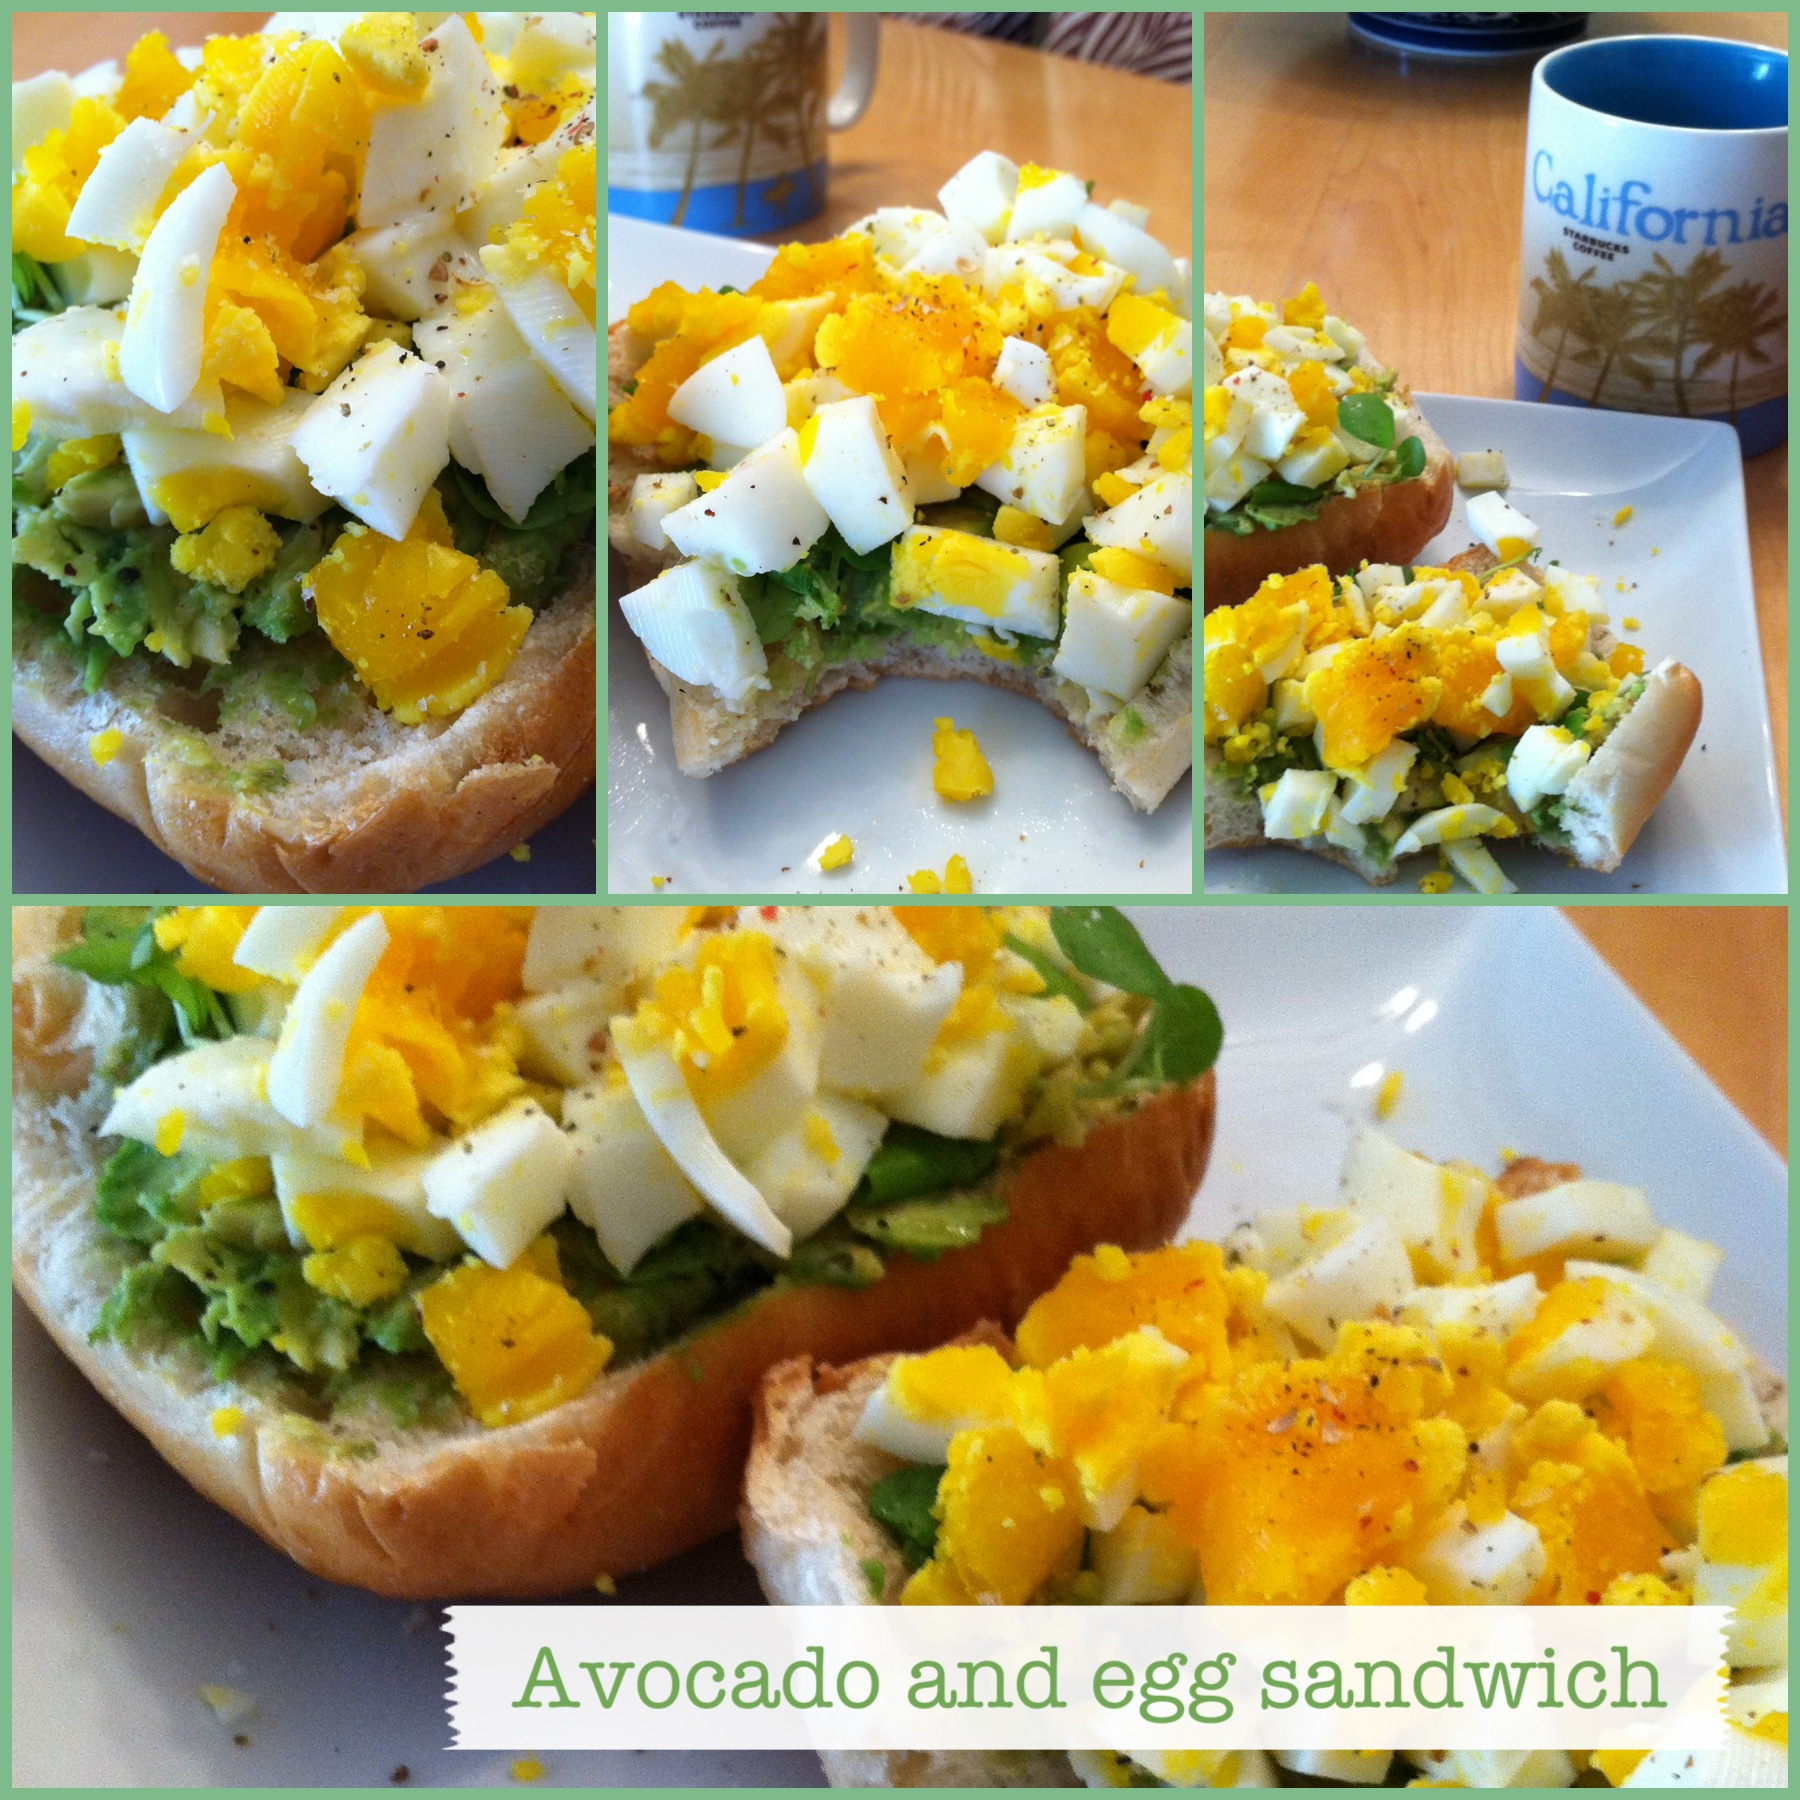 ... mashed avocados, watercress, chopped hard-boiled eggs, salt & pepper